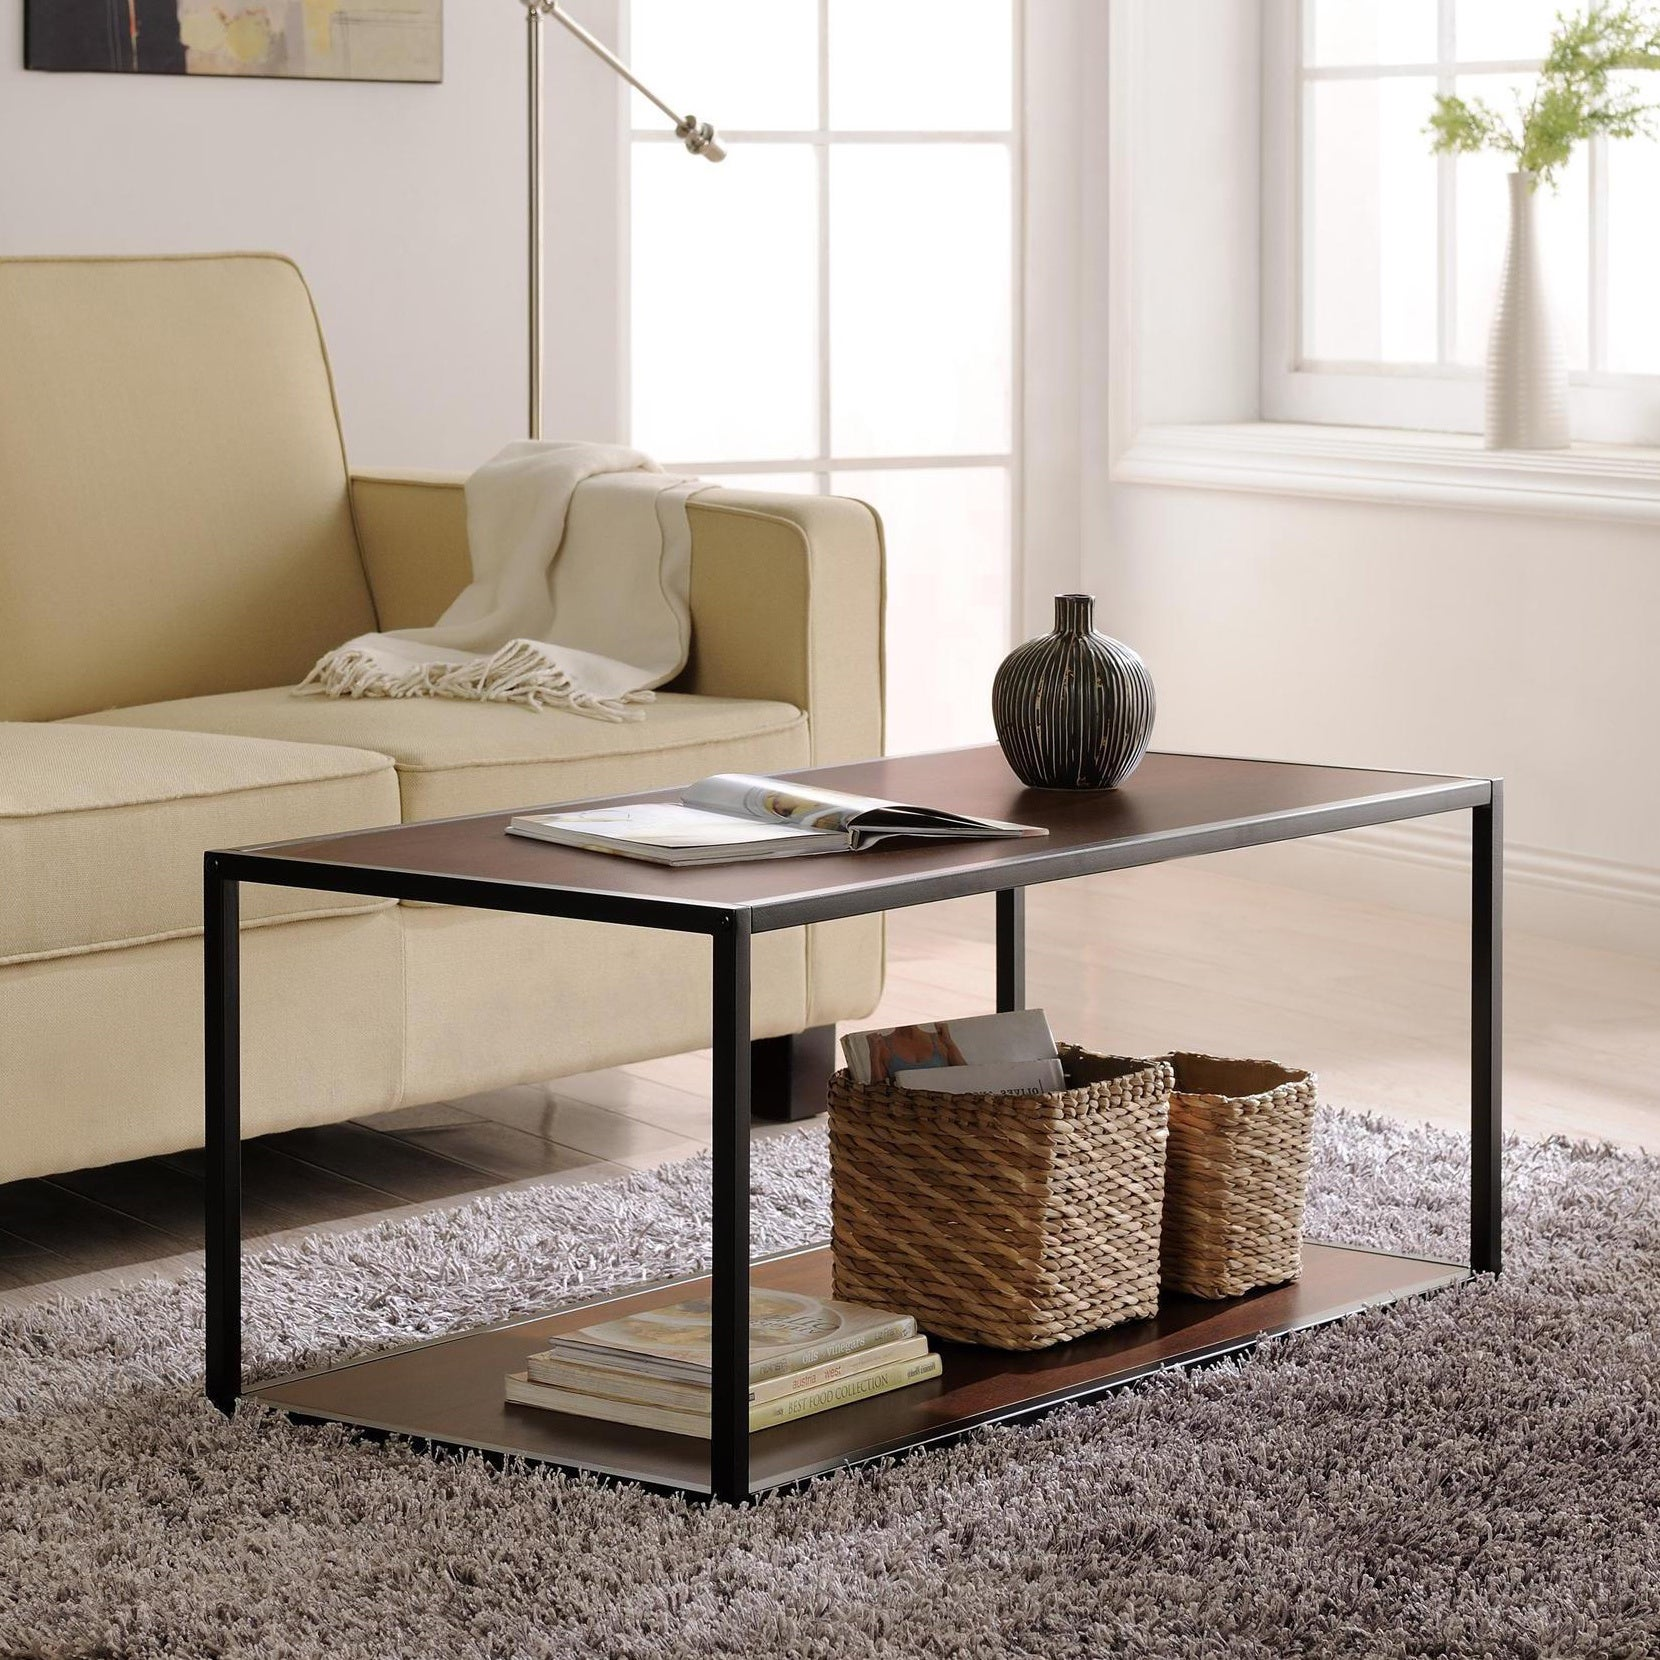 wicker park haddon metal frame coffee table free shipping on